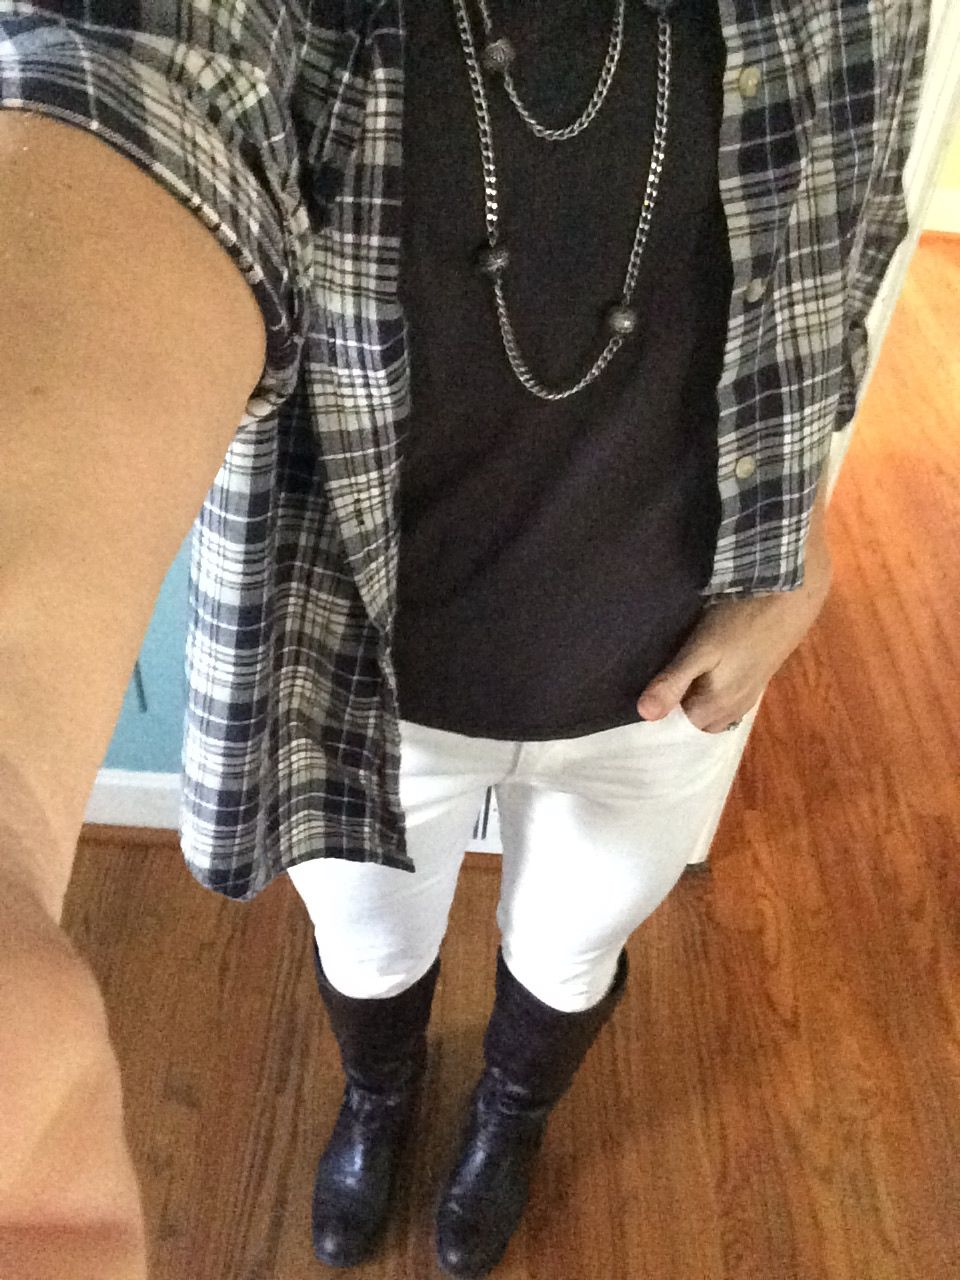 Flannel jeans and boots  flannel white jeans and tall boots  clothes  Pinterest  White